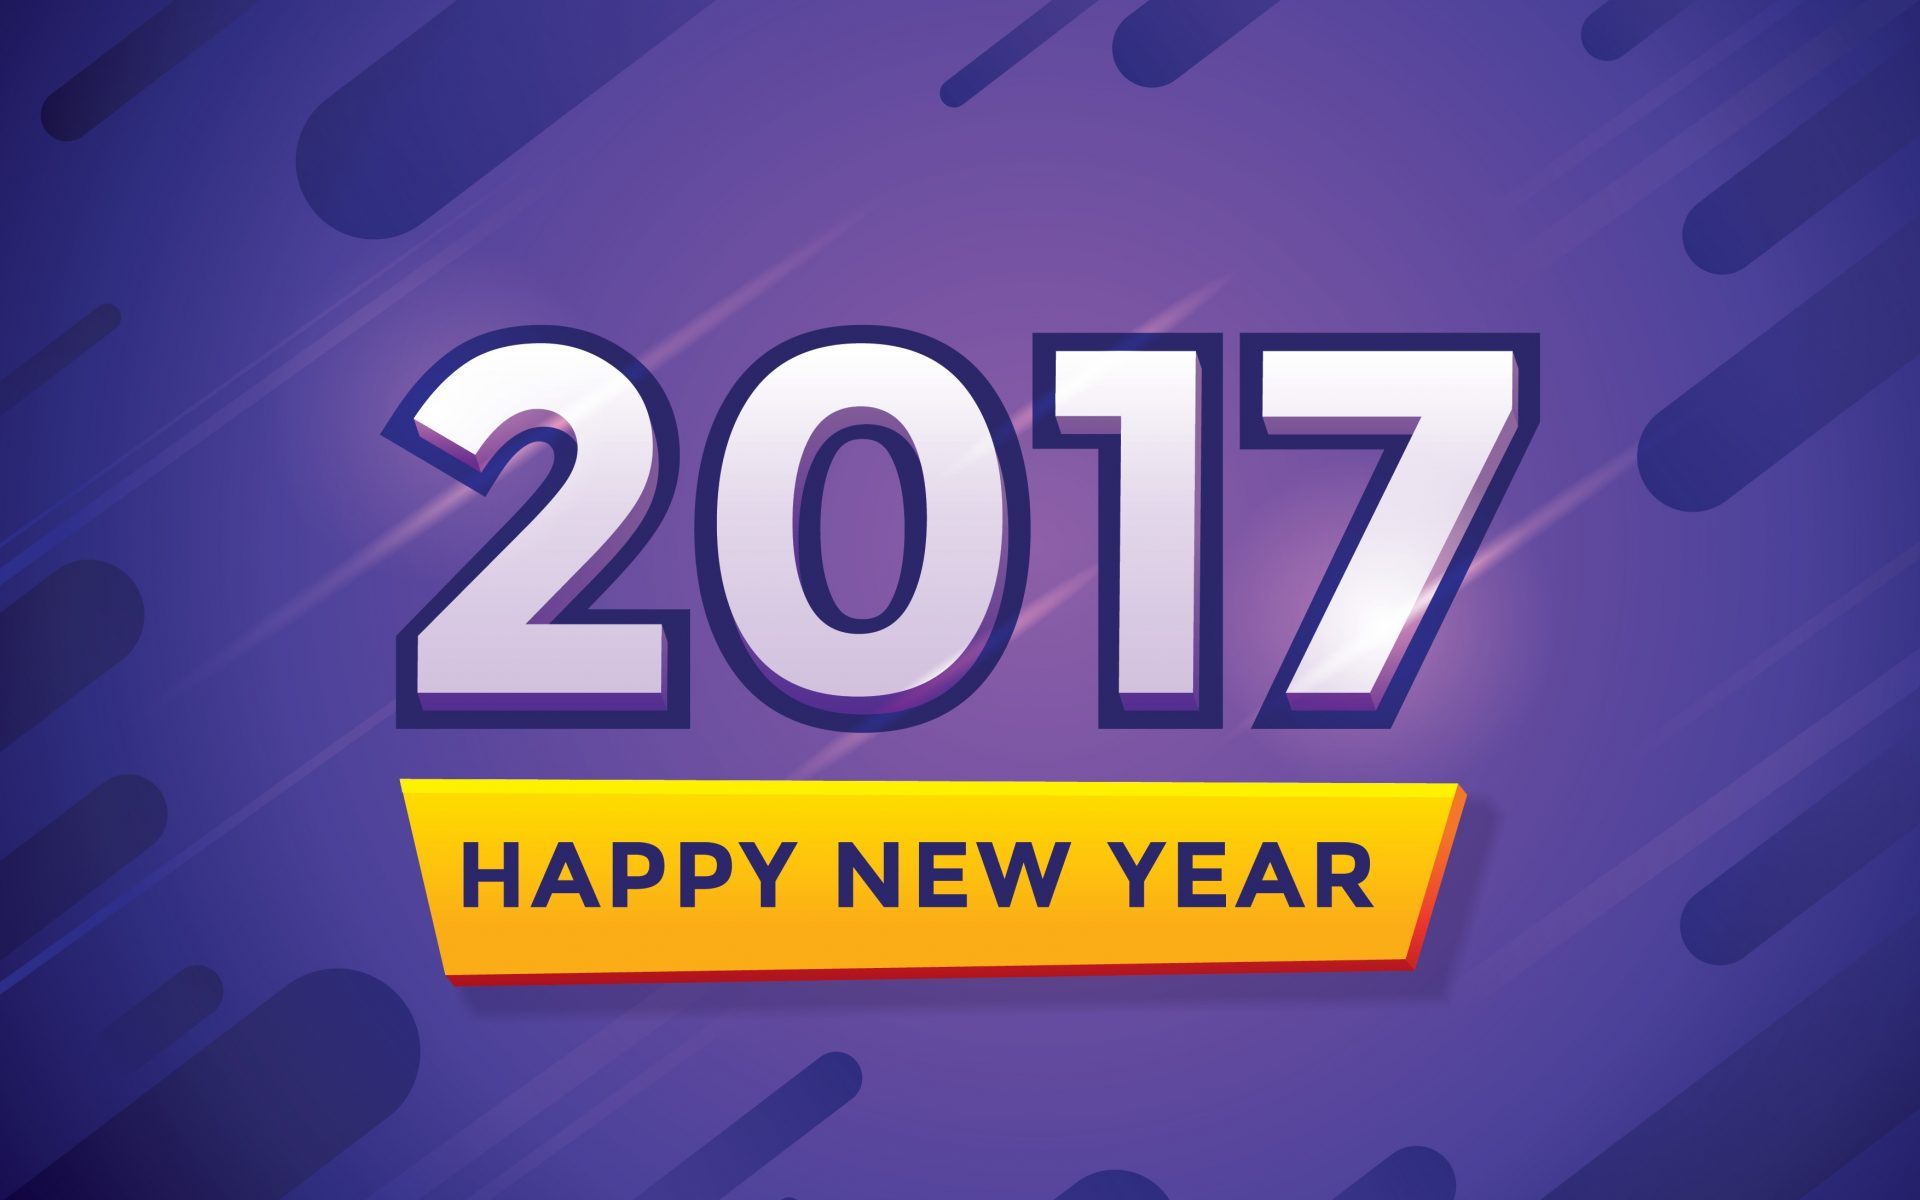 2017 Happy New Year Greetings